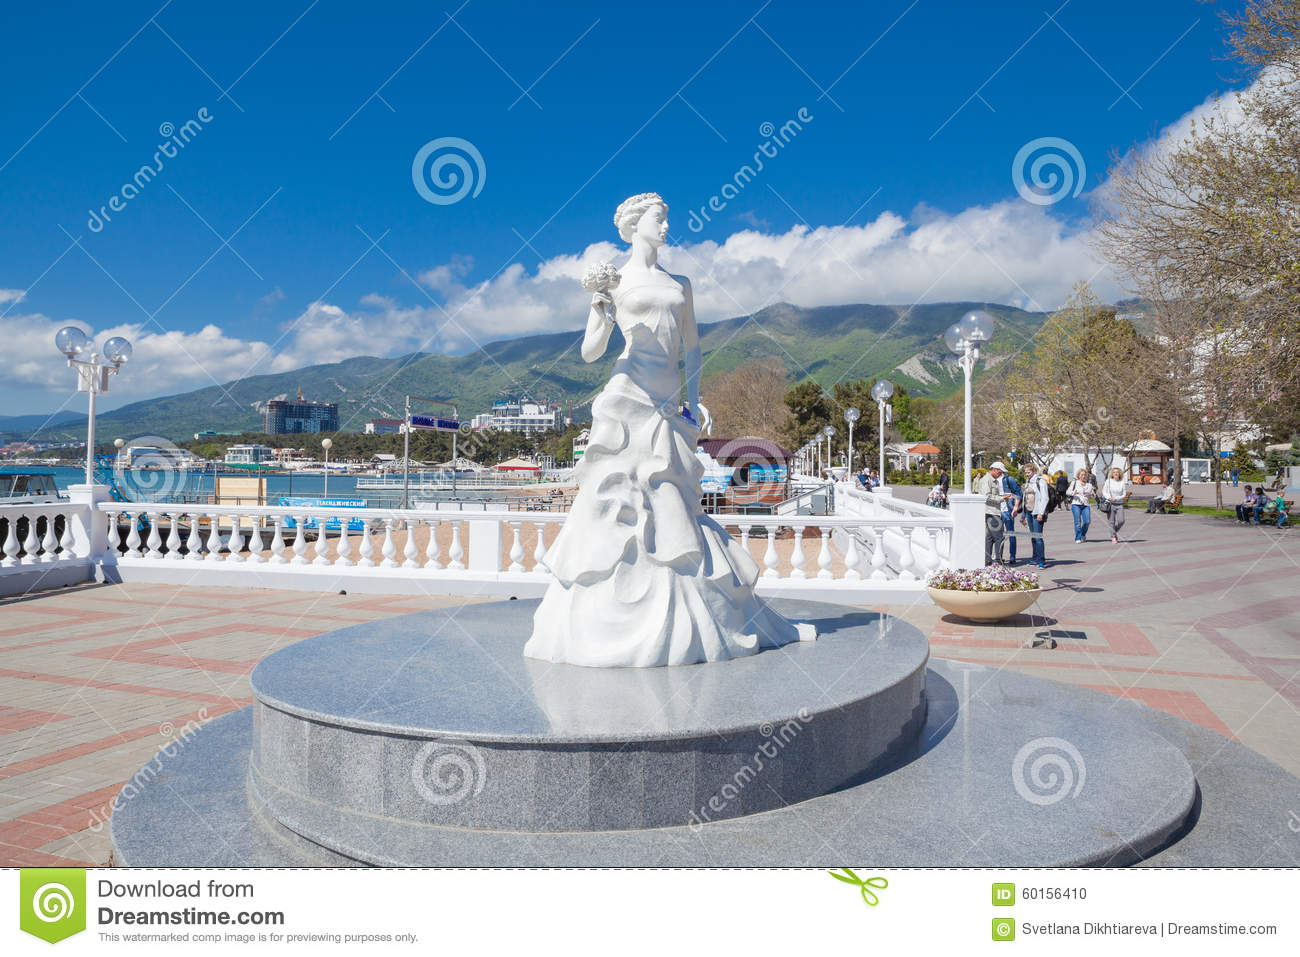 Sculpture White Bride Of Gelendzhik In Russia Editorial Image.